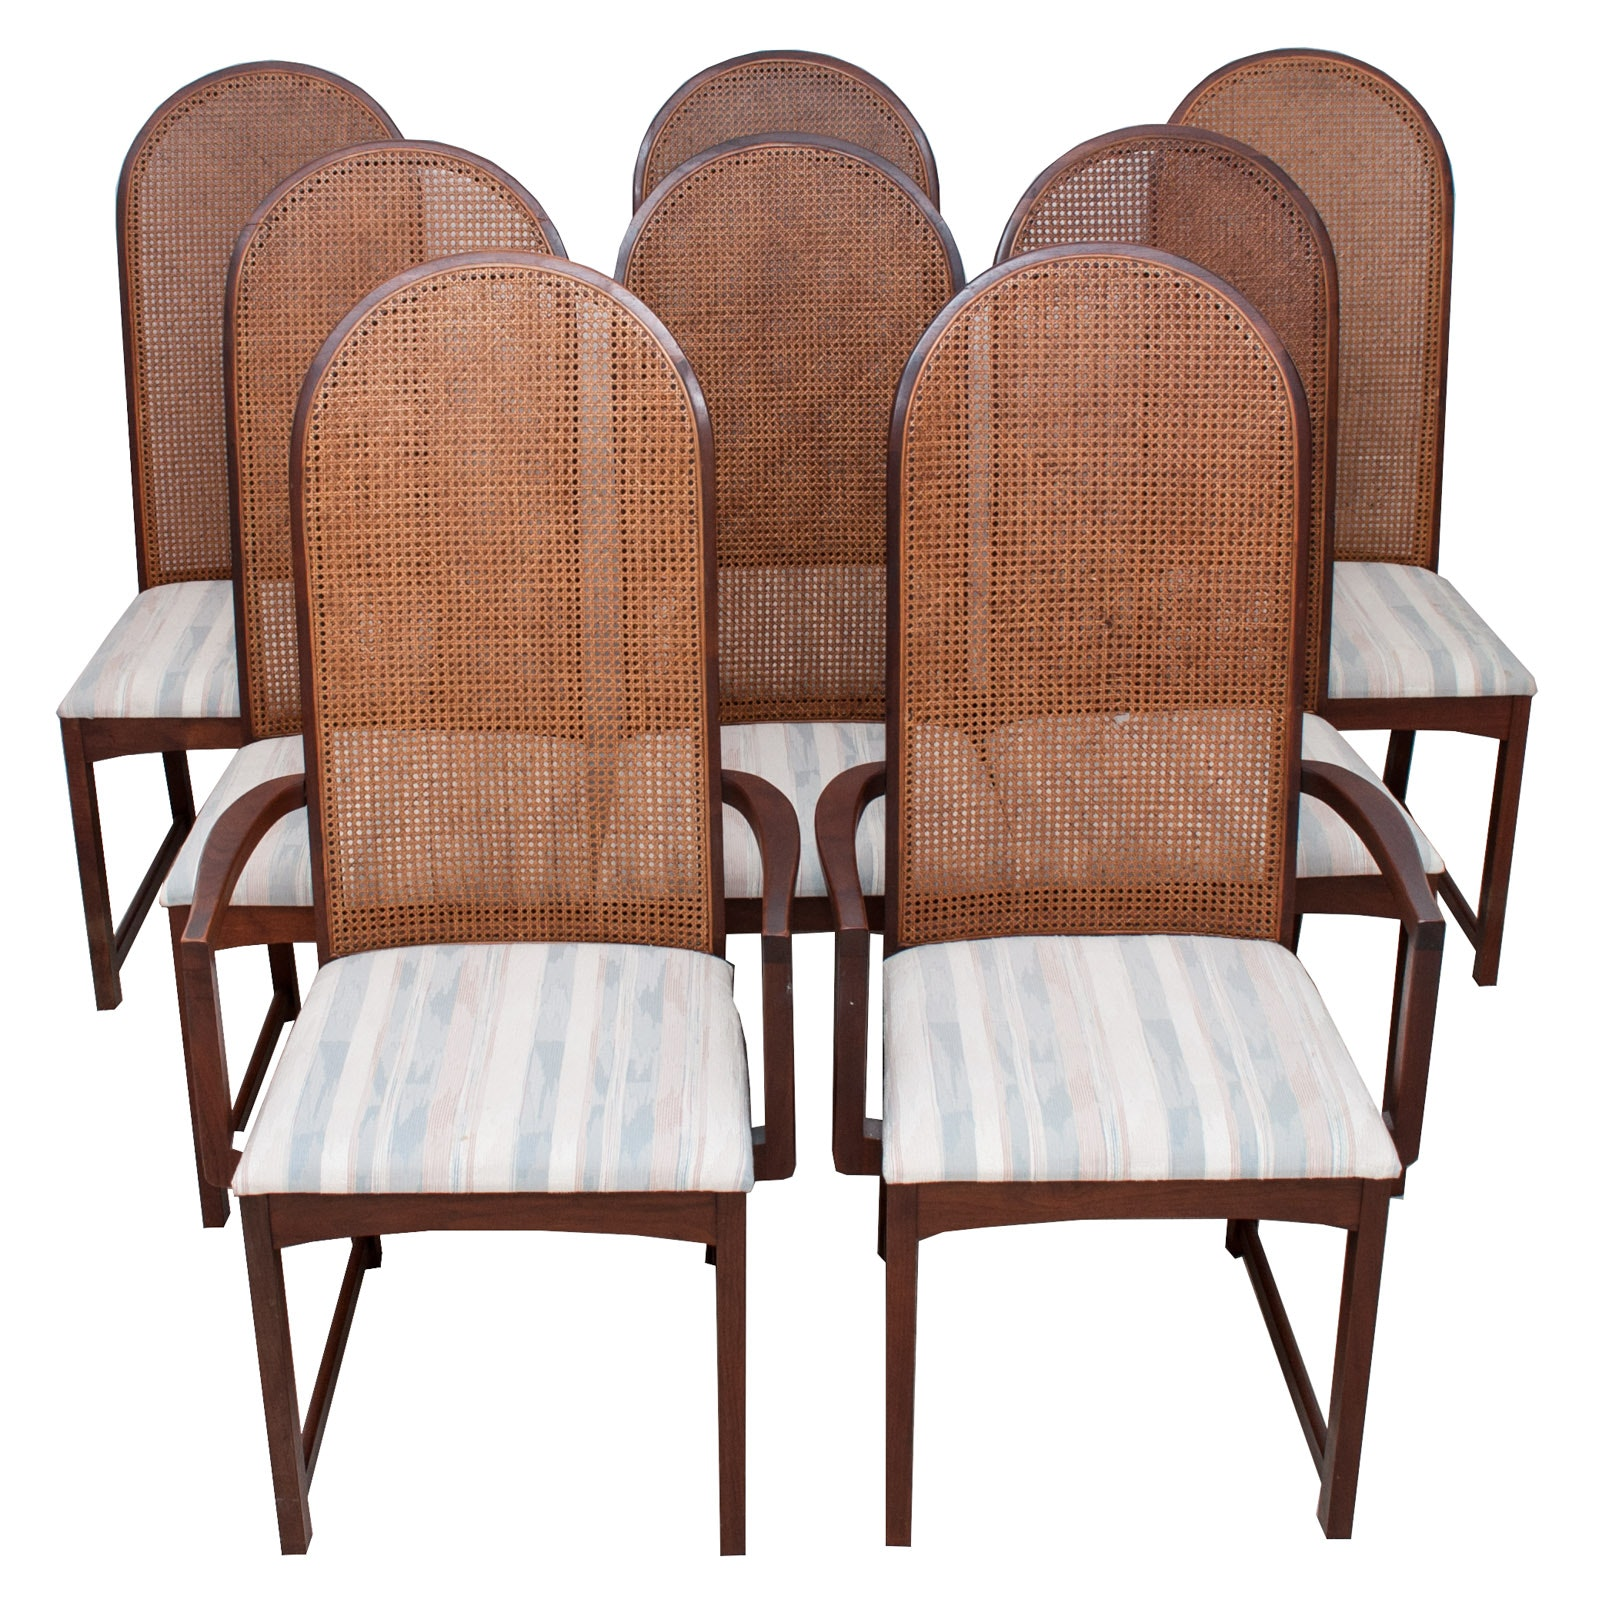 Set of Wood Cane Back Project Dining Room Chairs